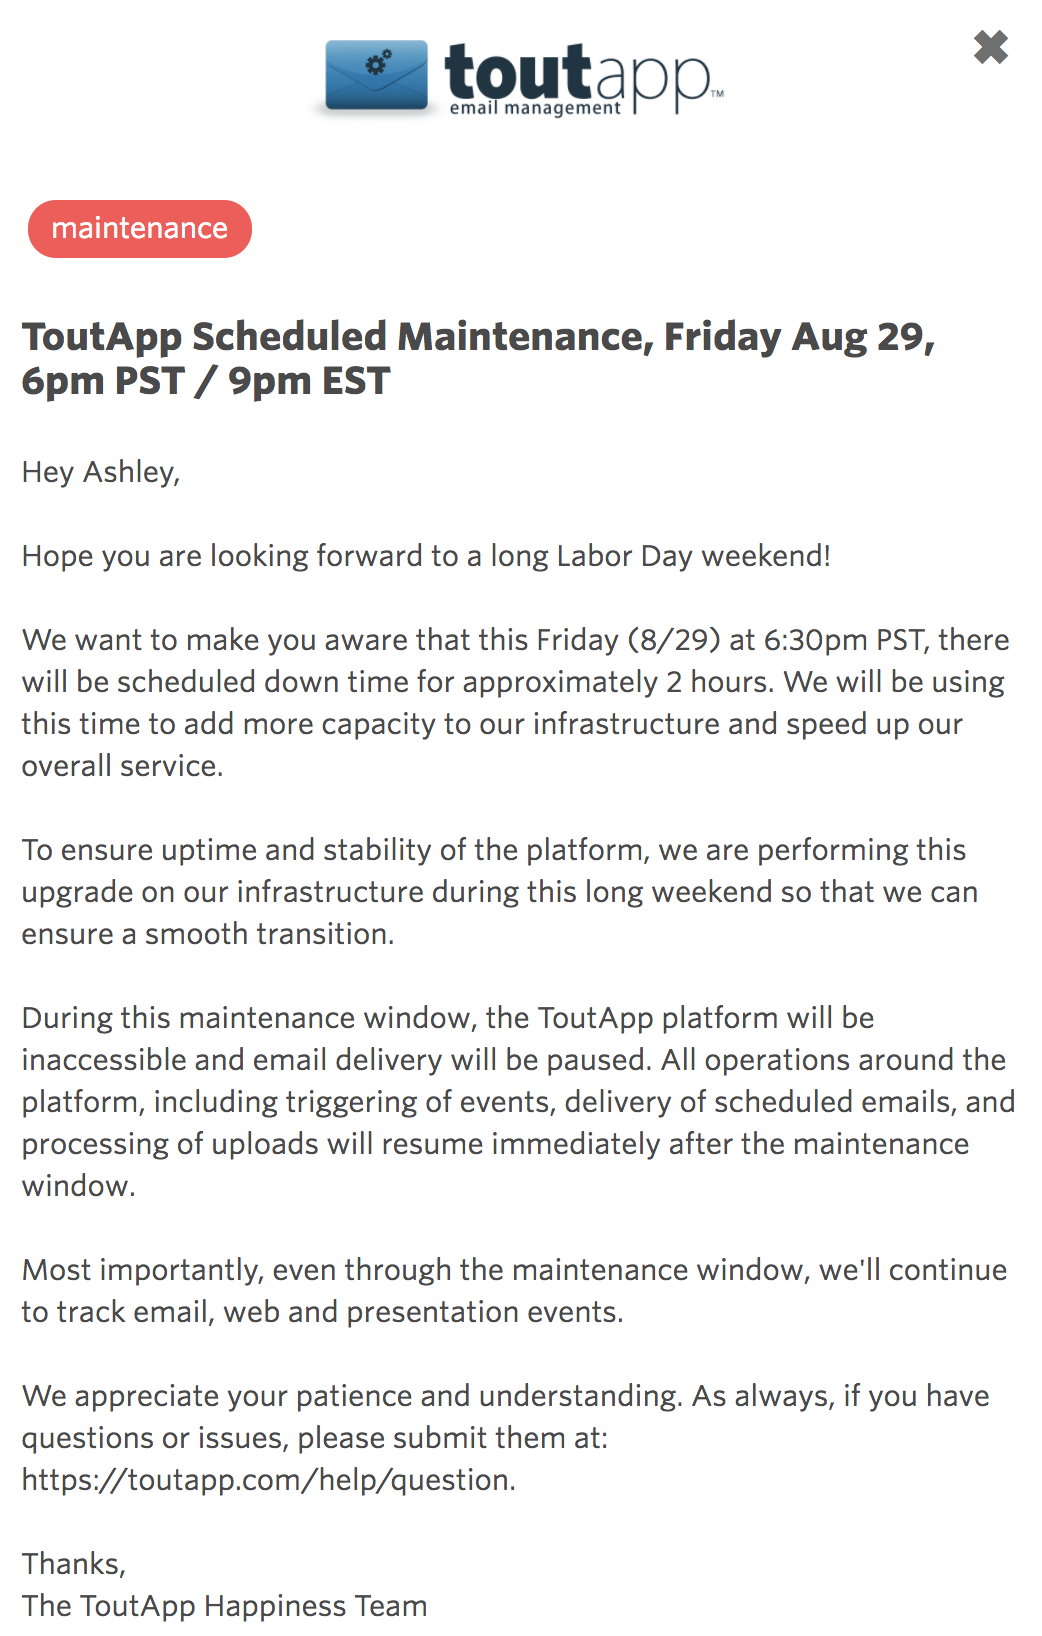 example of a detailed maintenance message from tout app